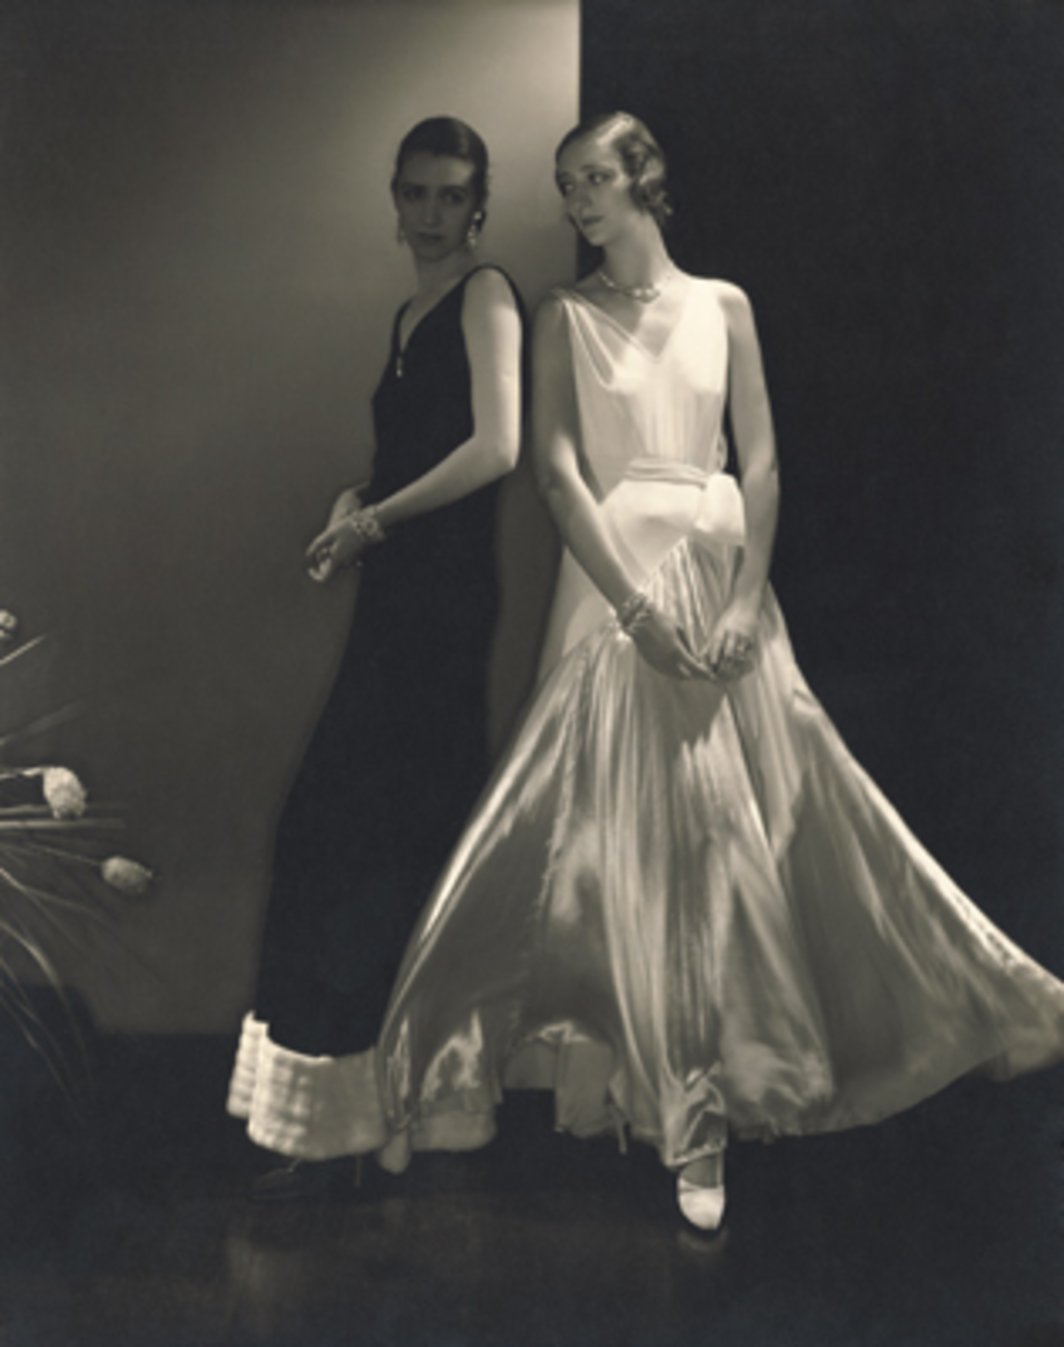 Edward Steichen, Models Wearing Sleeveless Gowns By Vionnet, 1930, black-and-white photograph. © 1930 Condé Nast Archive/Corbis.